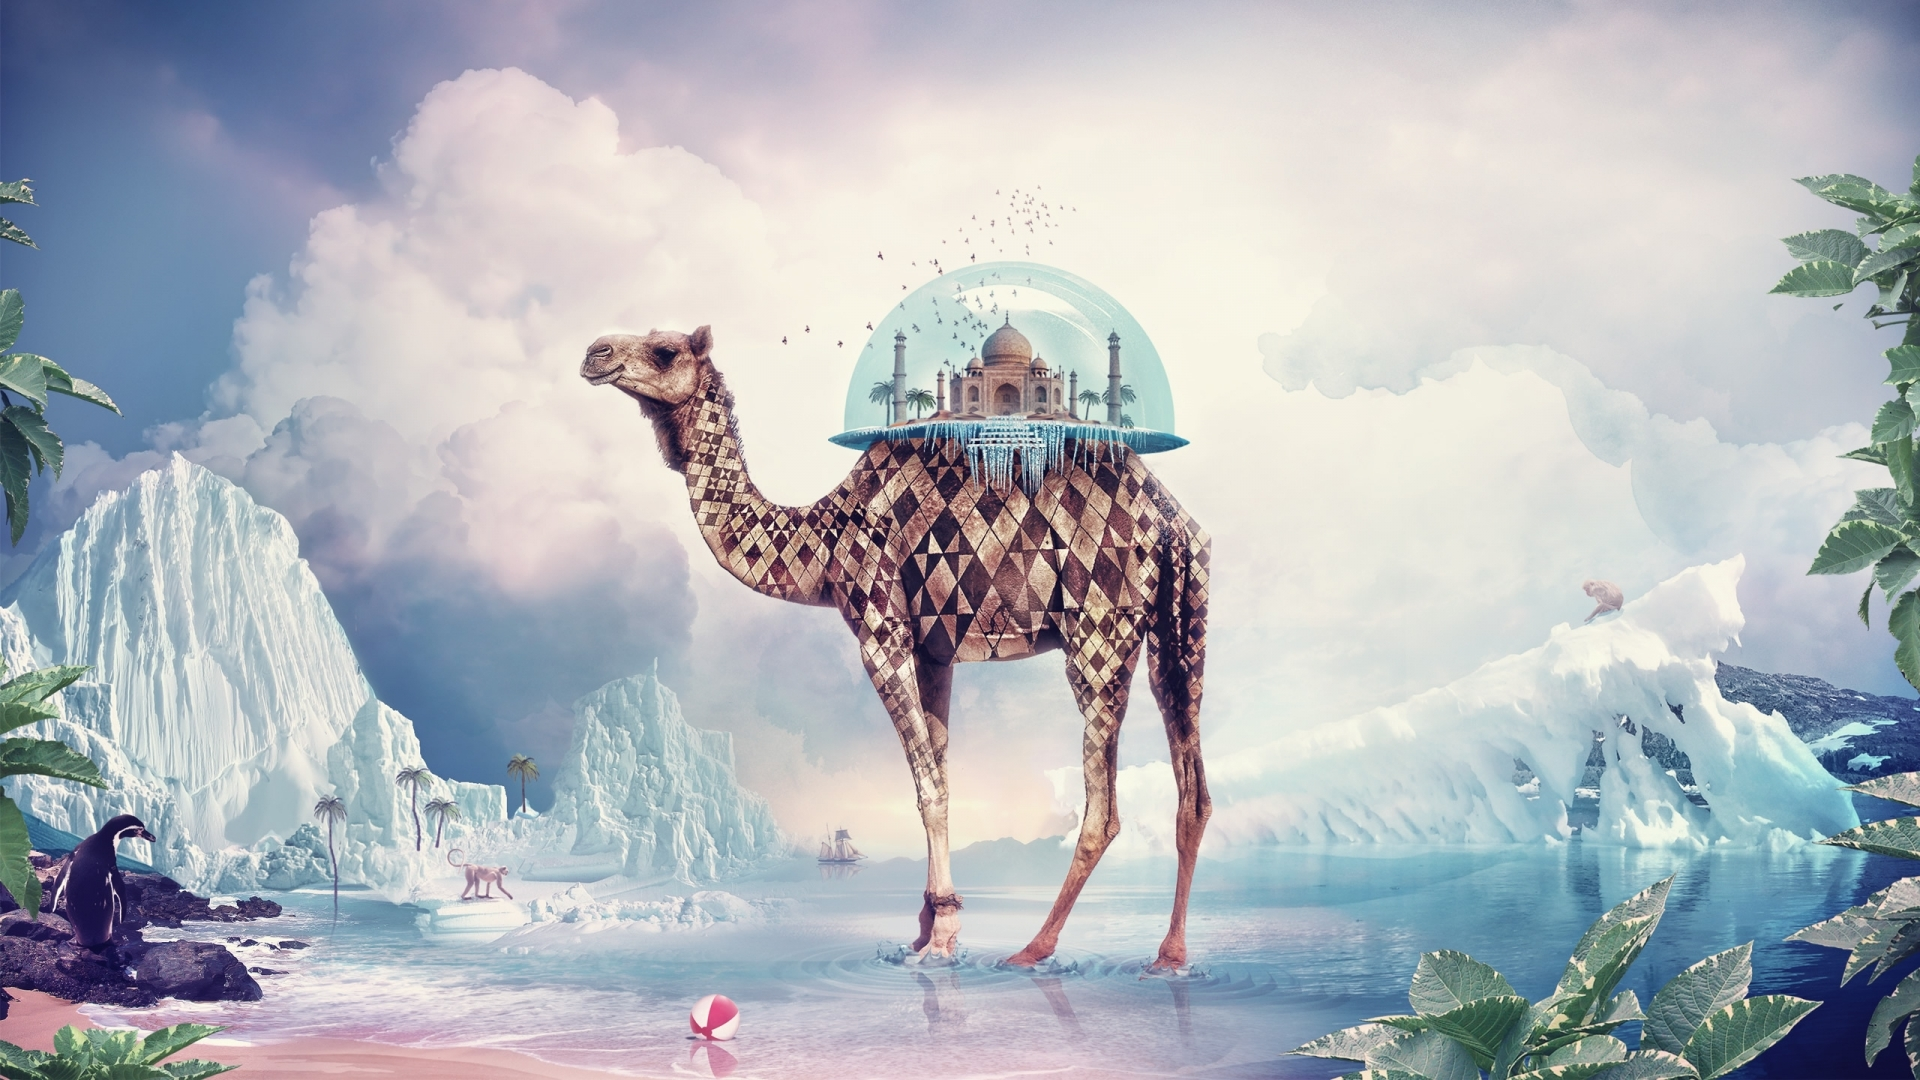 46444 download wallpaper Animals, Fantasy, Giraffes, Pictures screensavers and pictures for free